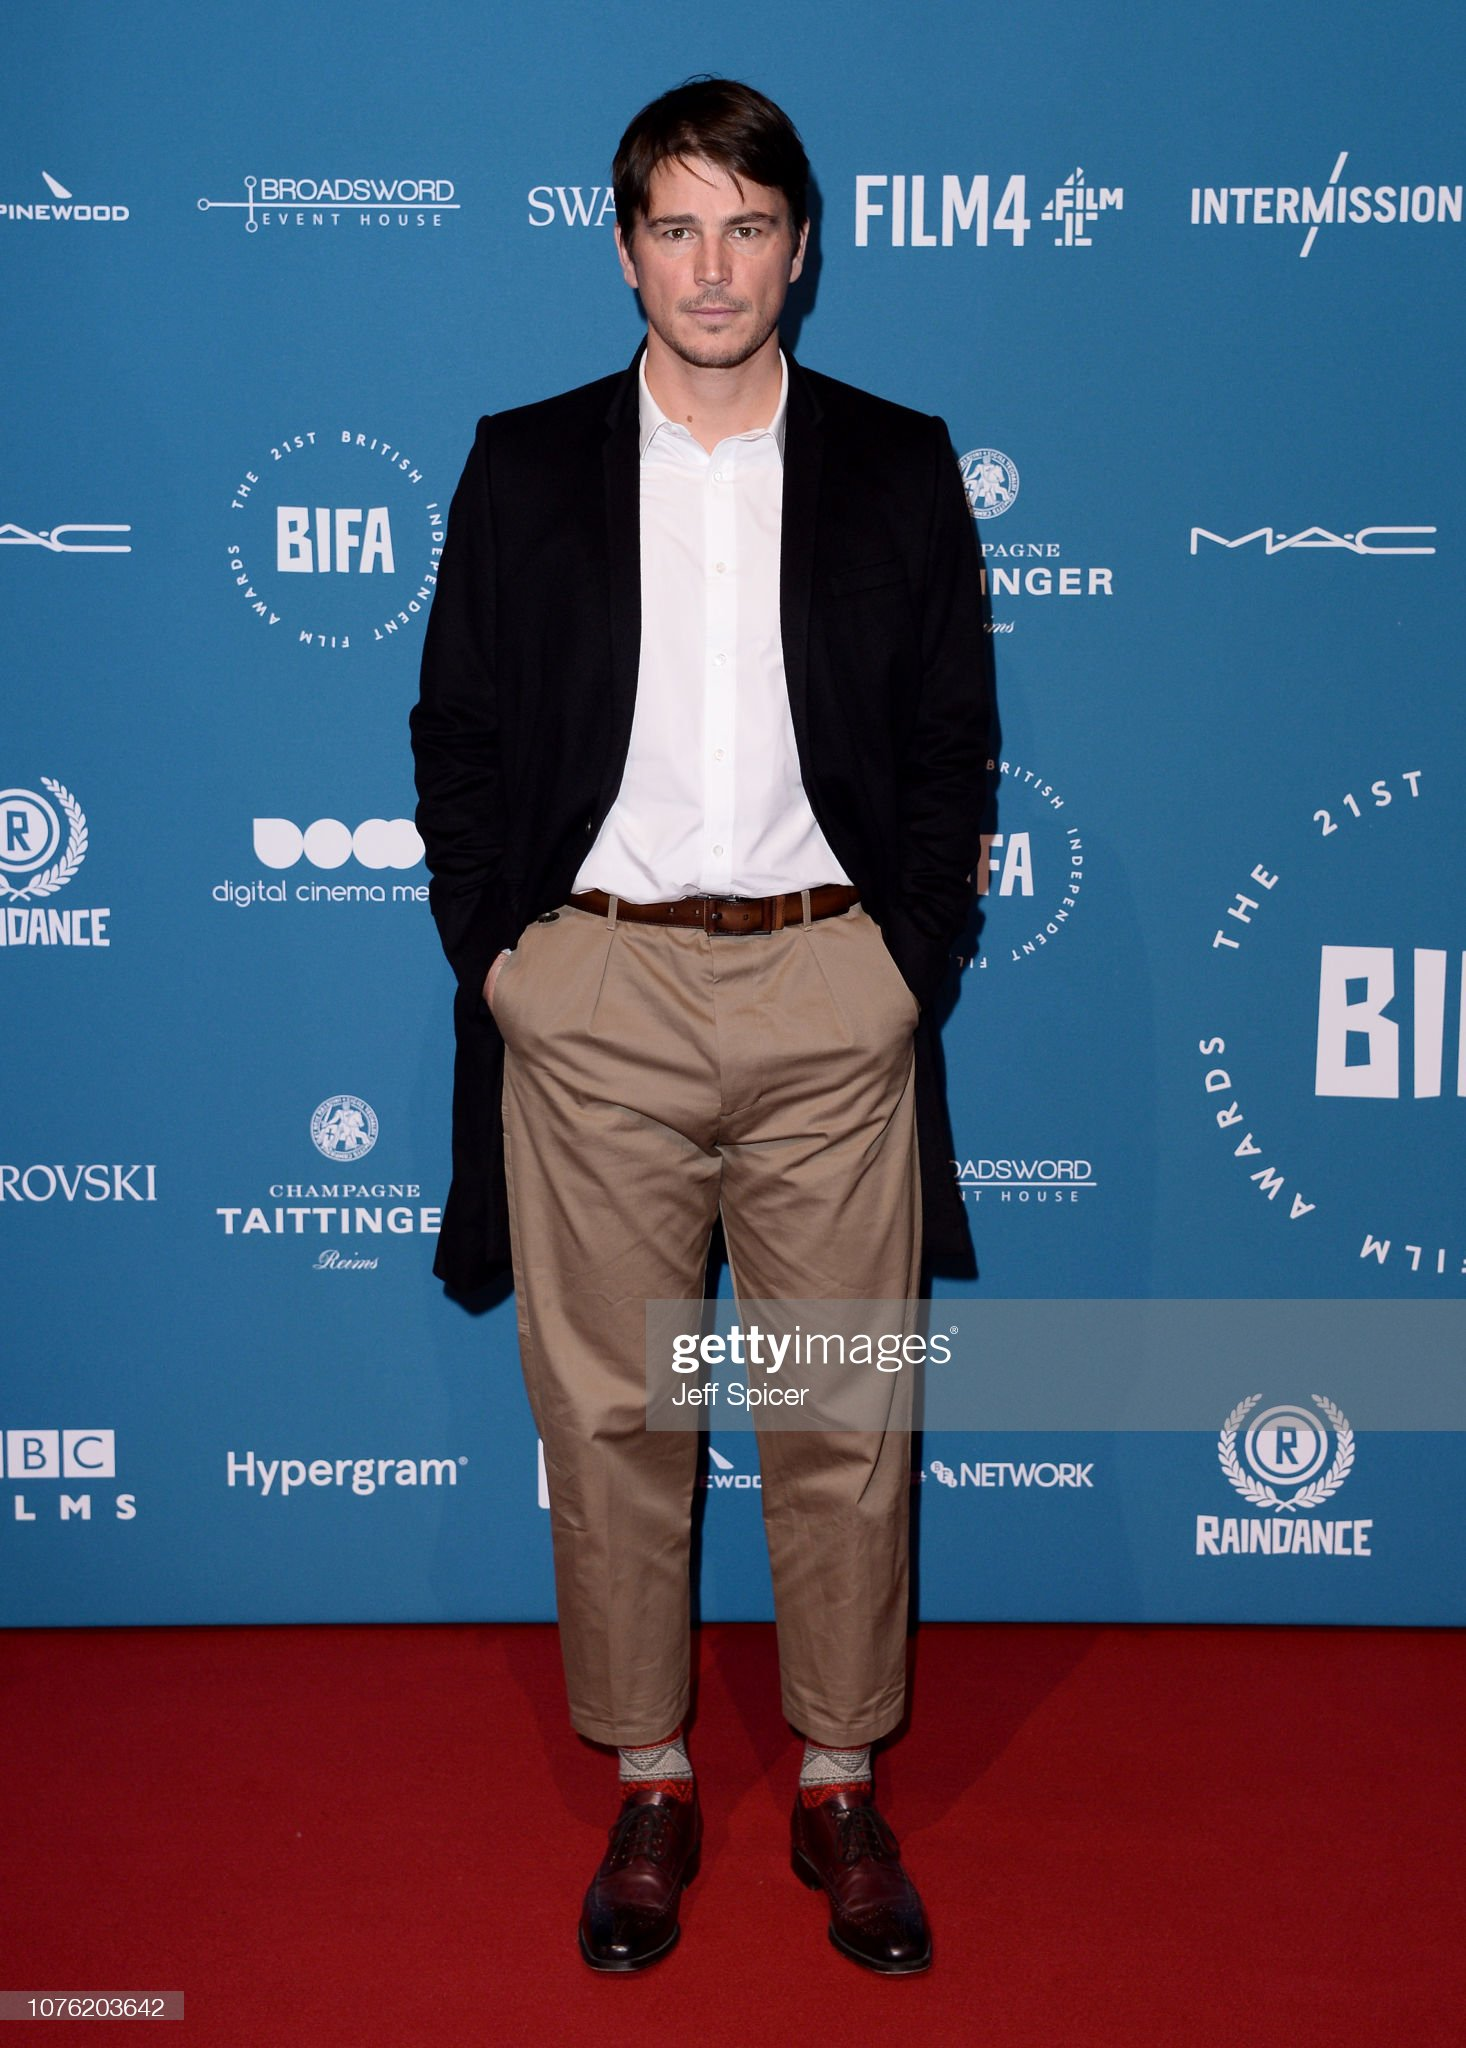 ¿Cuánto mide Josh Harnett? - Altura - Real height Josh-hartnett-attends-the-21st-british-independent-film-awards-at-old-picture-id1076203642?s=2048x2048